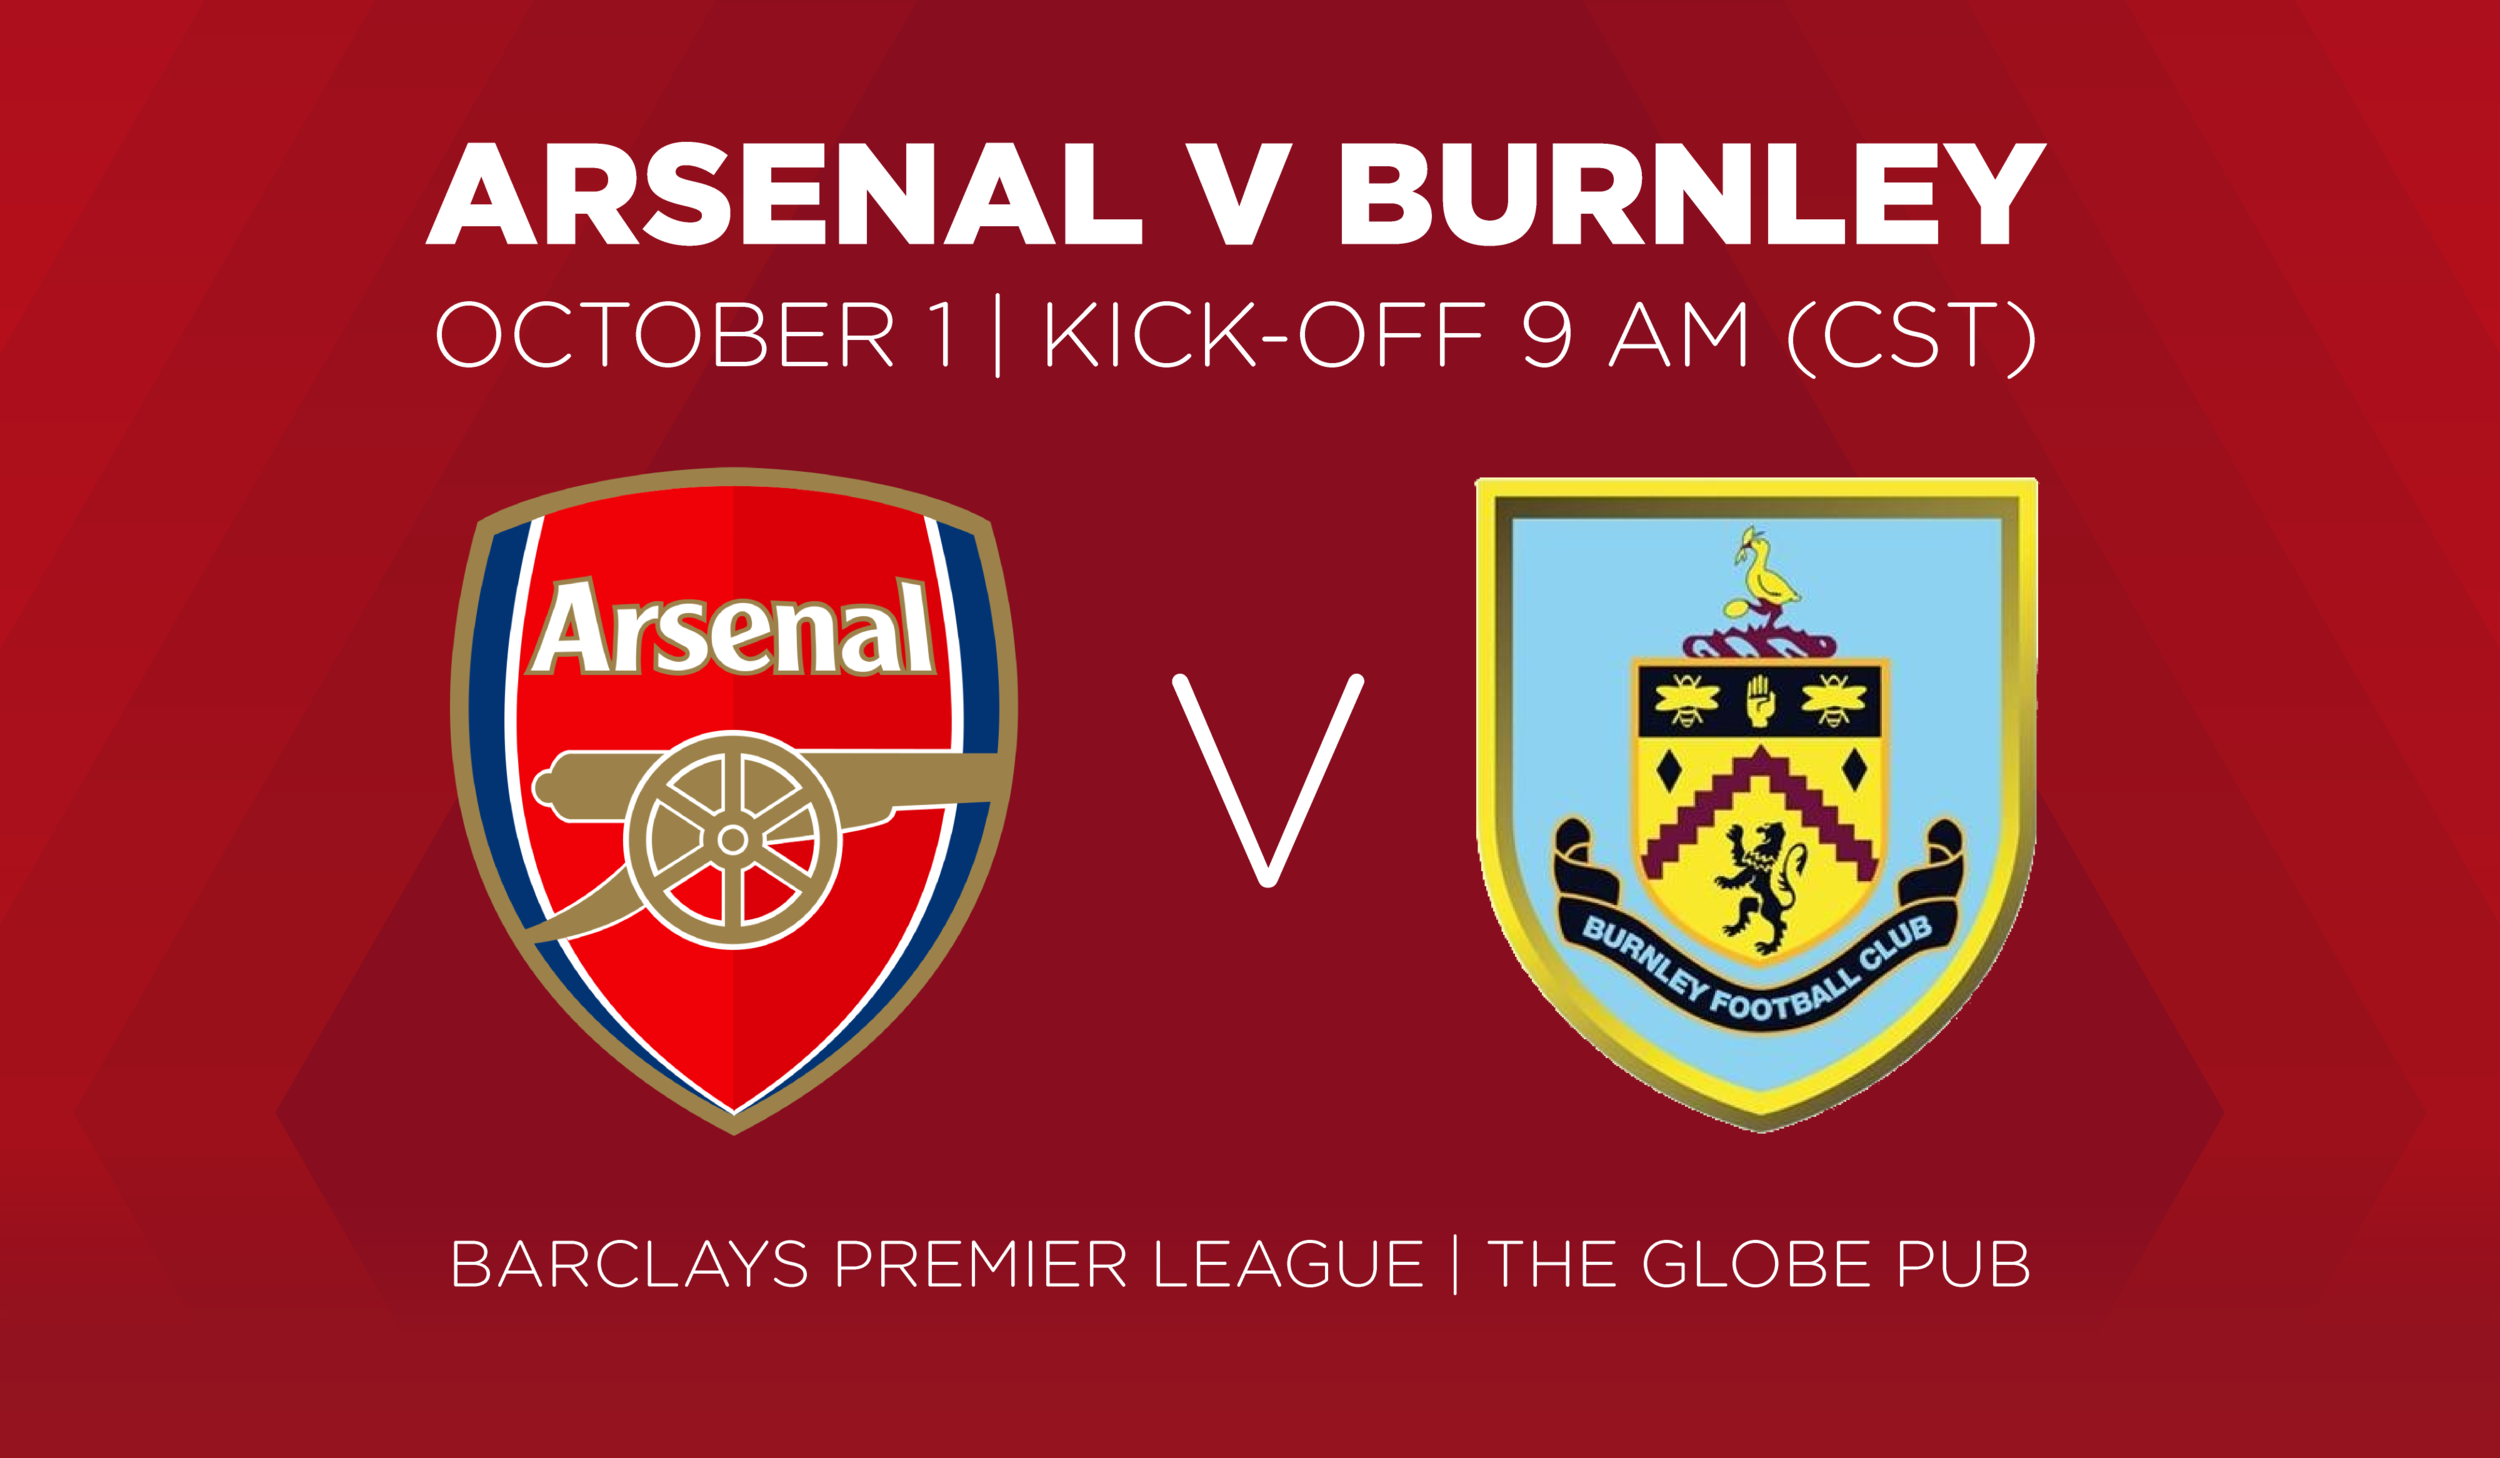 Arsenal V Burnley October 1